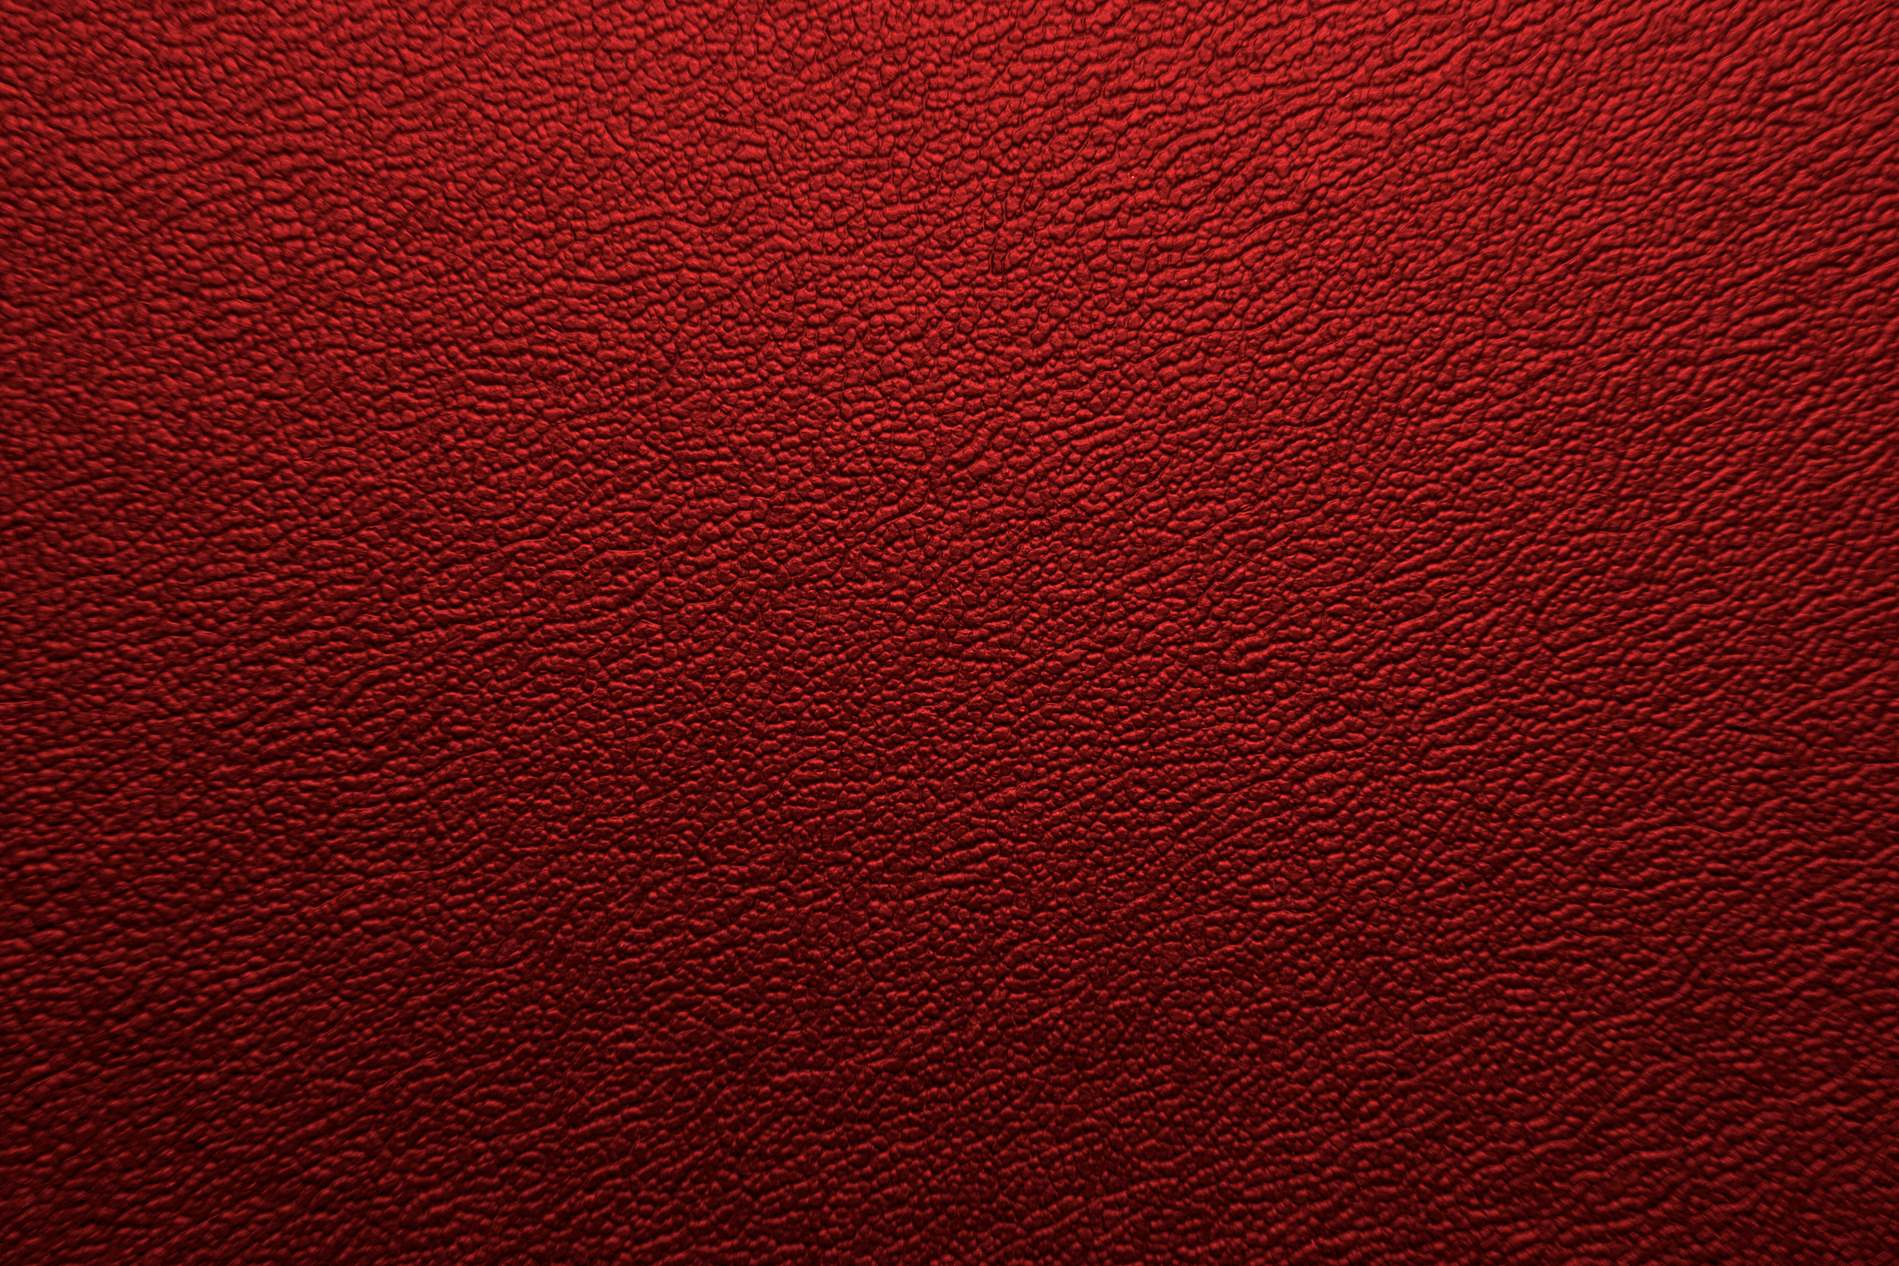 Red Leather Texture Background - PhotoHDX